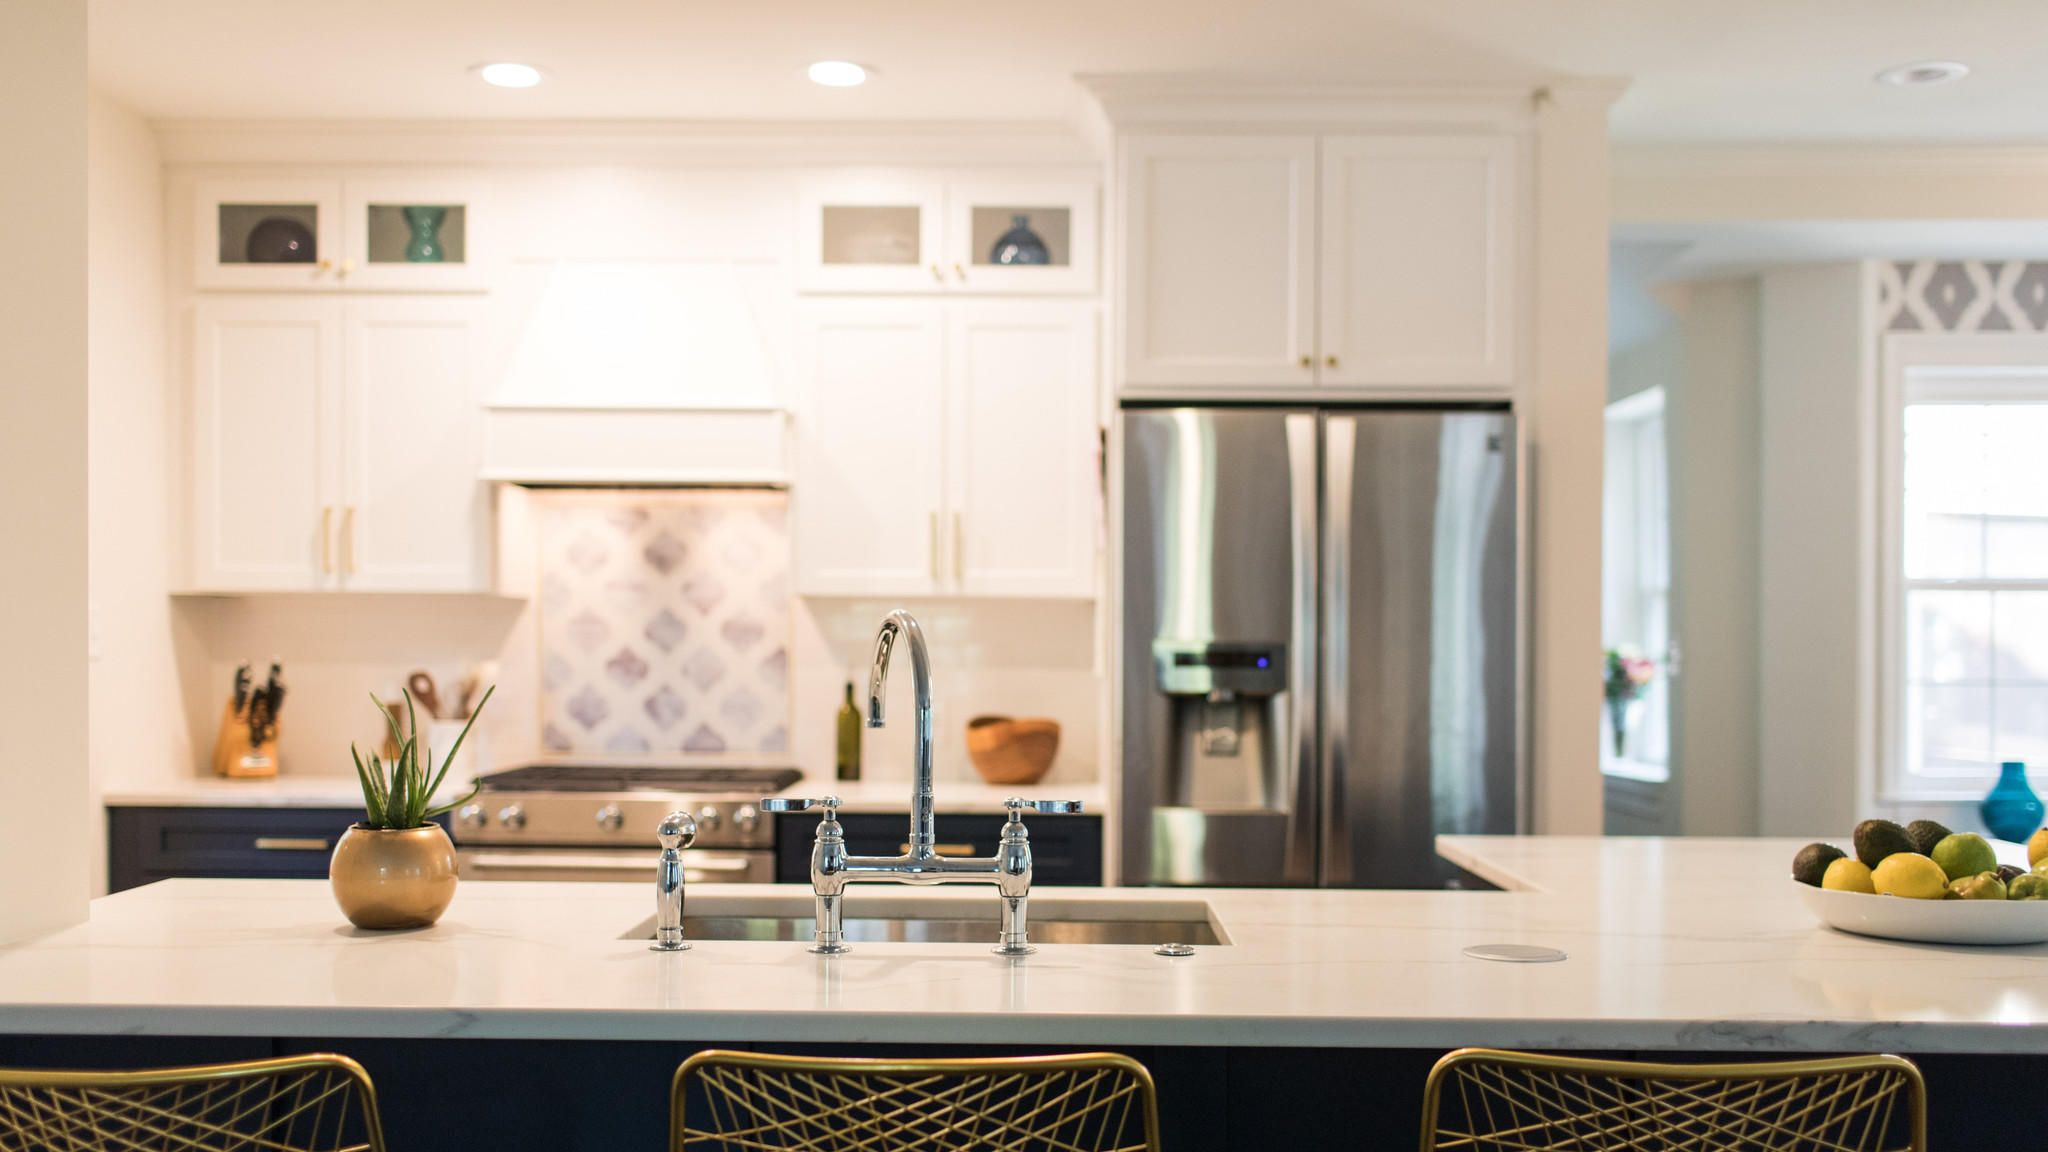 5 Hot Kitchen Design Trends In The Baltimore Area Kitchen Design Trends Kitchen Design Design